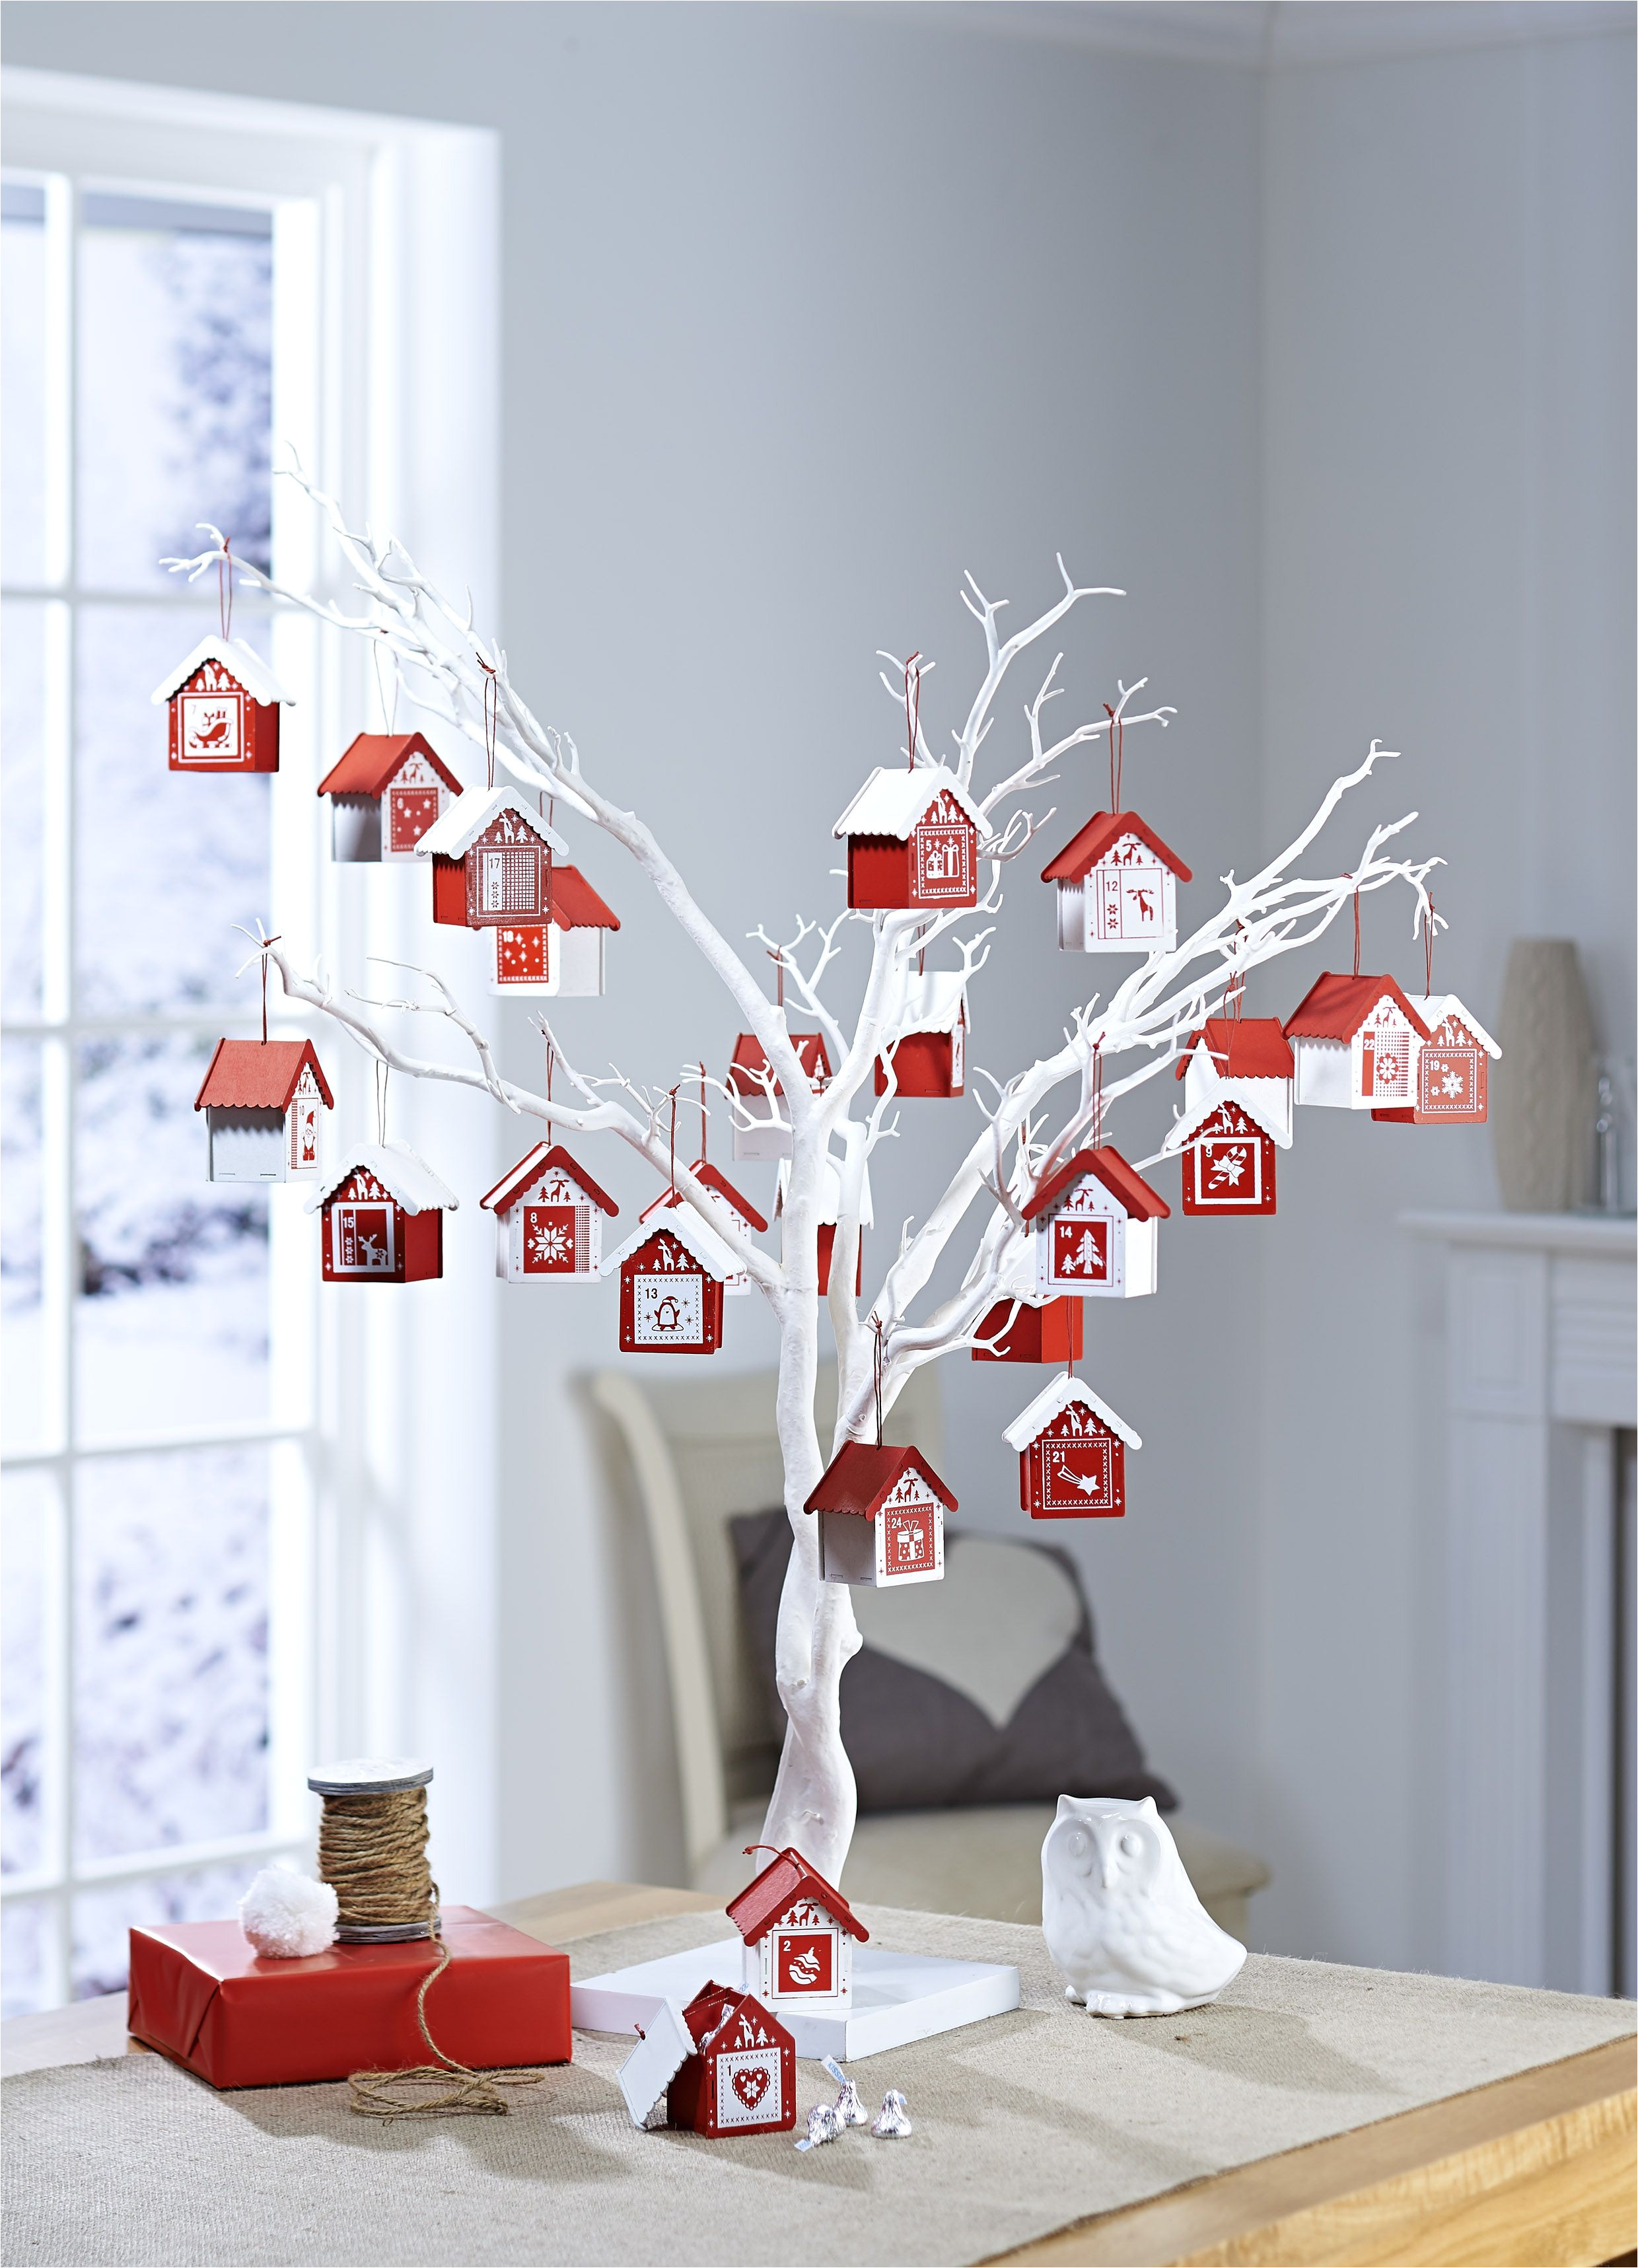 bored of the usual cardboard advent calendars with chocolate button inserts well how about this idea for a change advent houses on a white twig tree from